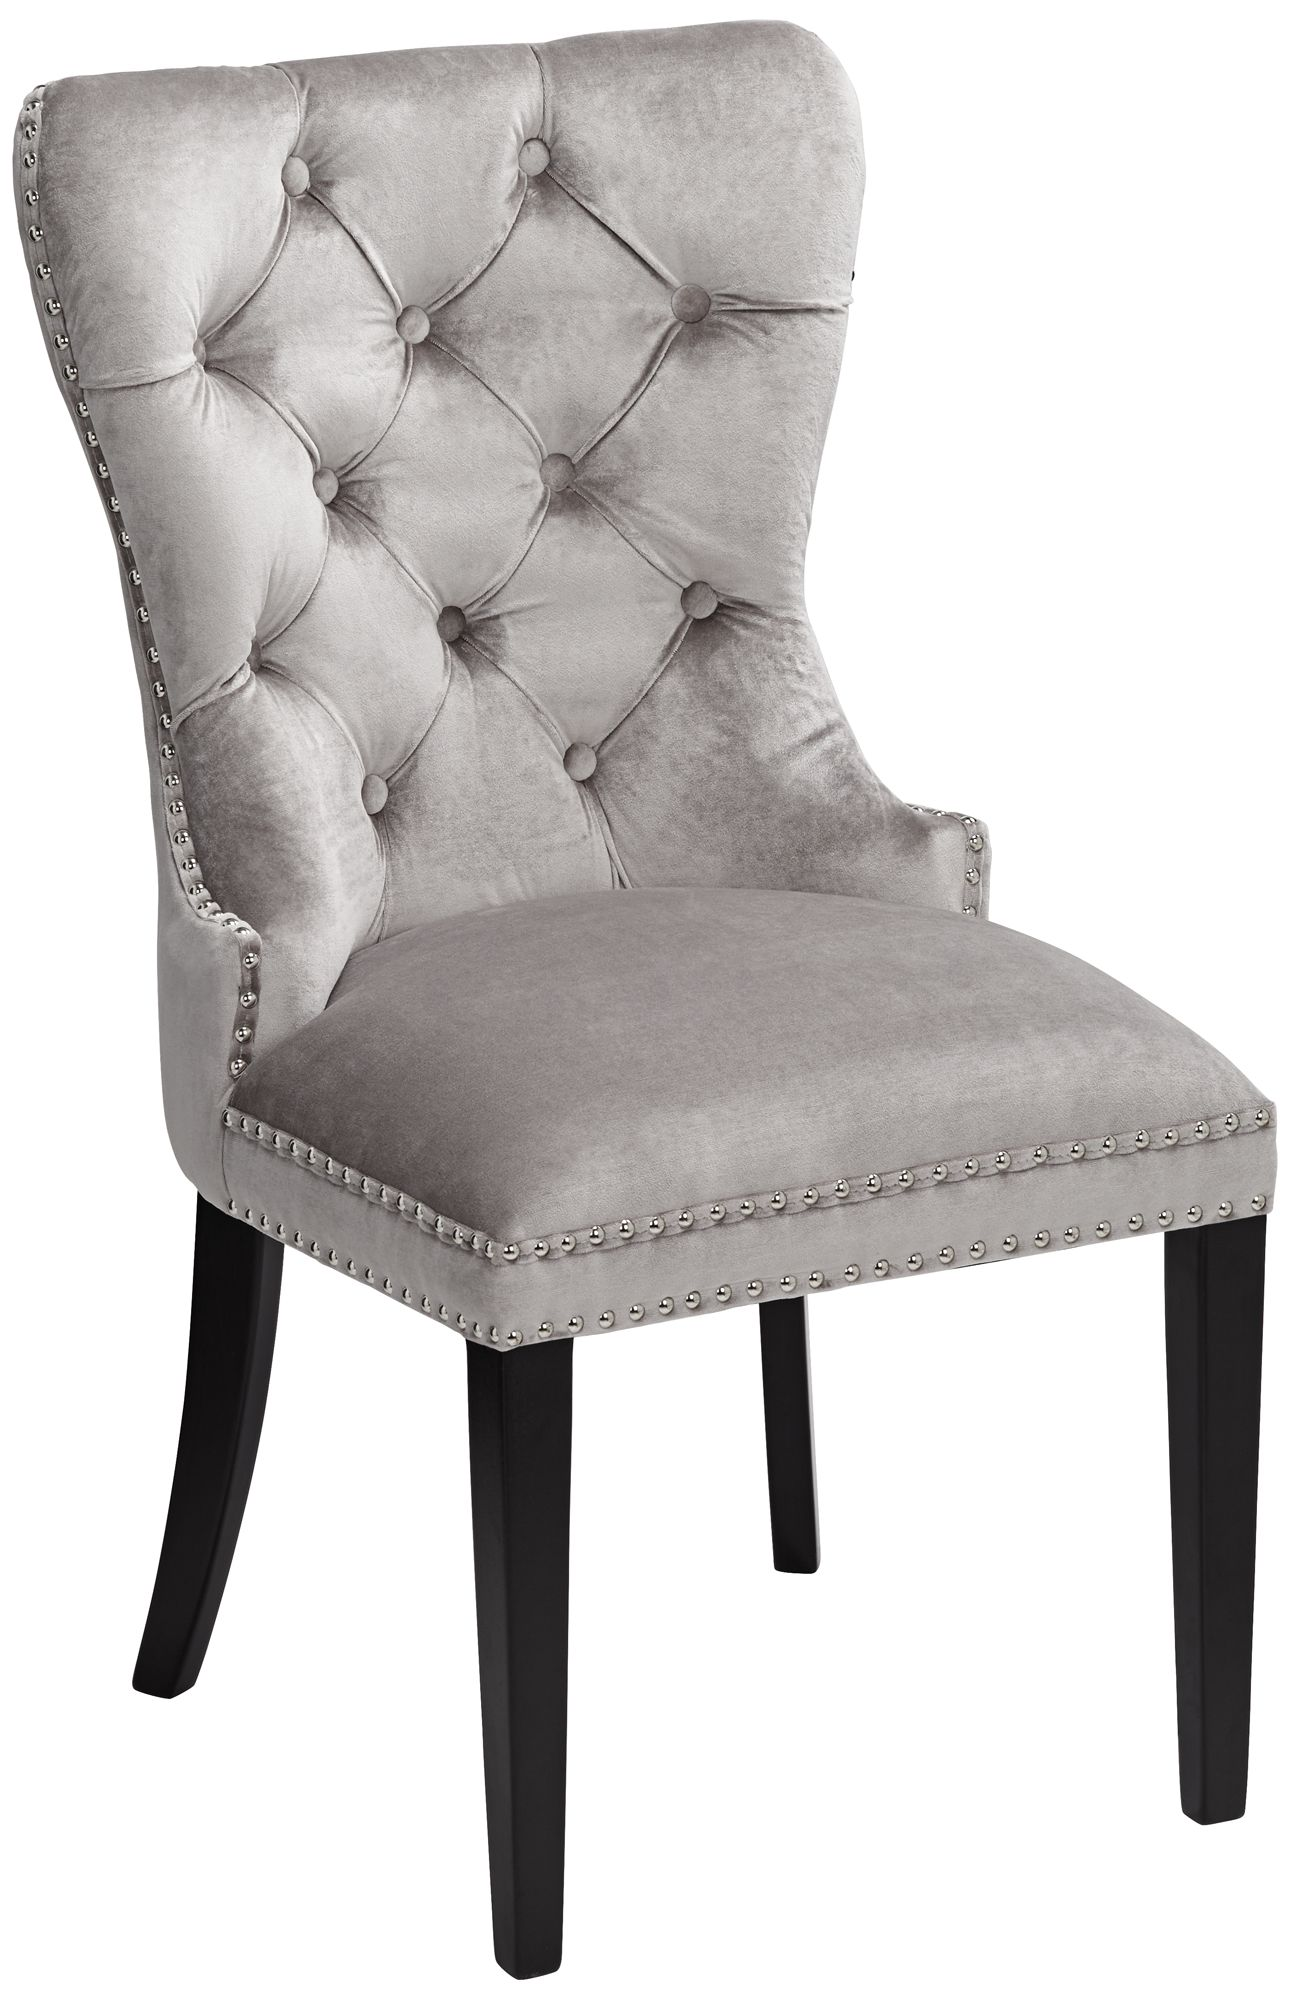 Etonnant Euphoria Tufted Gray Velvet Dining Chair